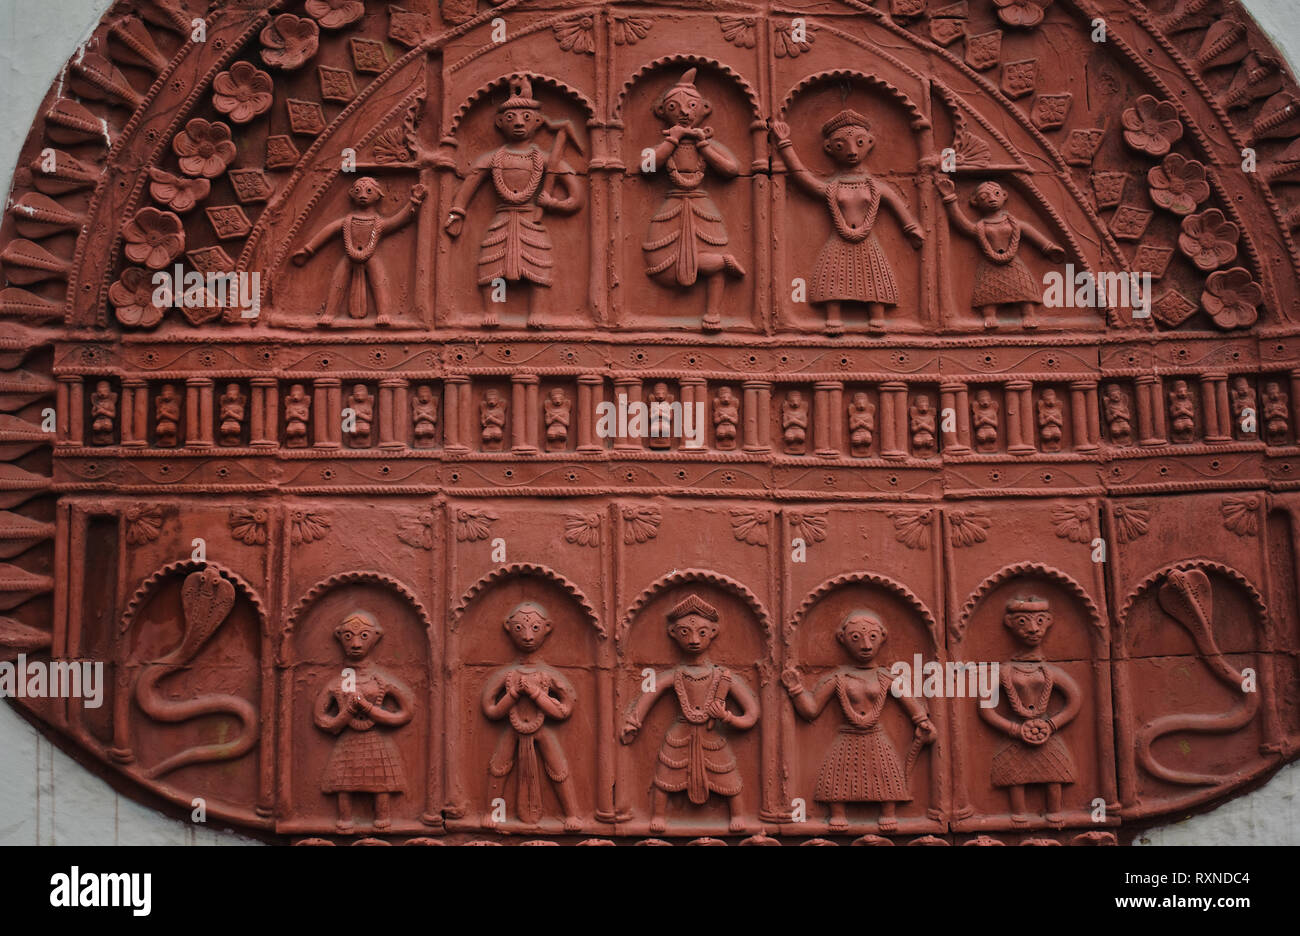 Terracotta inspired by tribal art ( India) - Stock Image